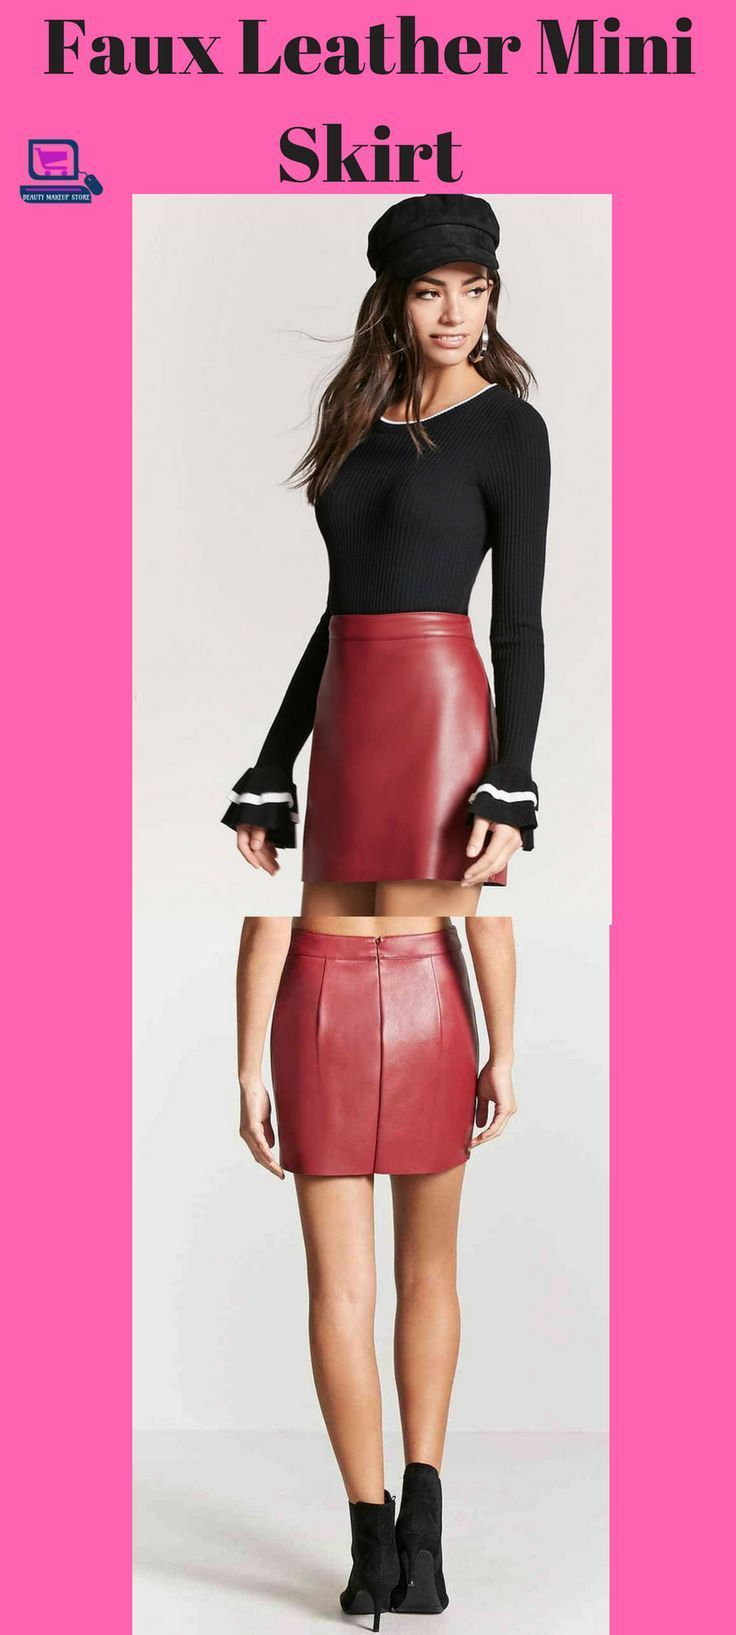 faux leather mini skirt #miniskirt #miniskirt, #skirt #womenskirts mini skirt | mini skirt high heels tight dresses | mini skirts micro | mini skirts and high heels | mini skirt and heels | Hot Mini Skirts | Mini Skirt Mania | Mini skirt | Mini skirts | Mini Skirt Style Wedding Dresses | Mini Skirts & Short Hems | #hothighheelstightdresses